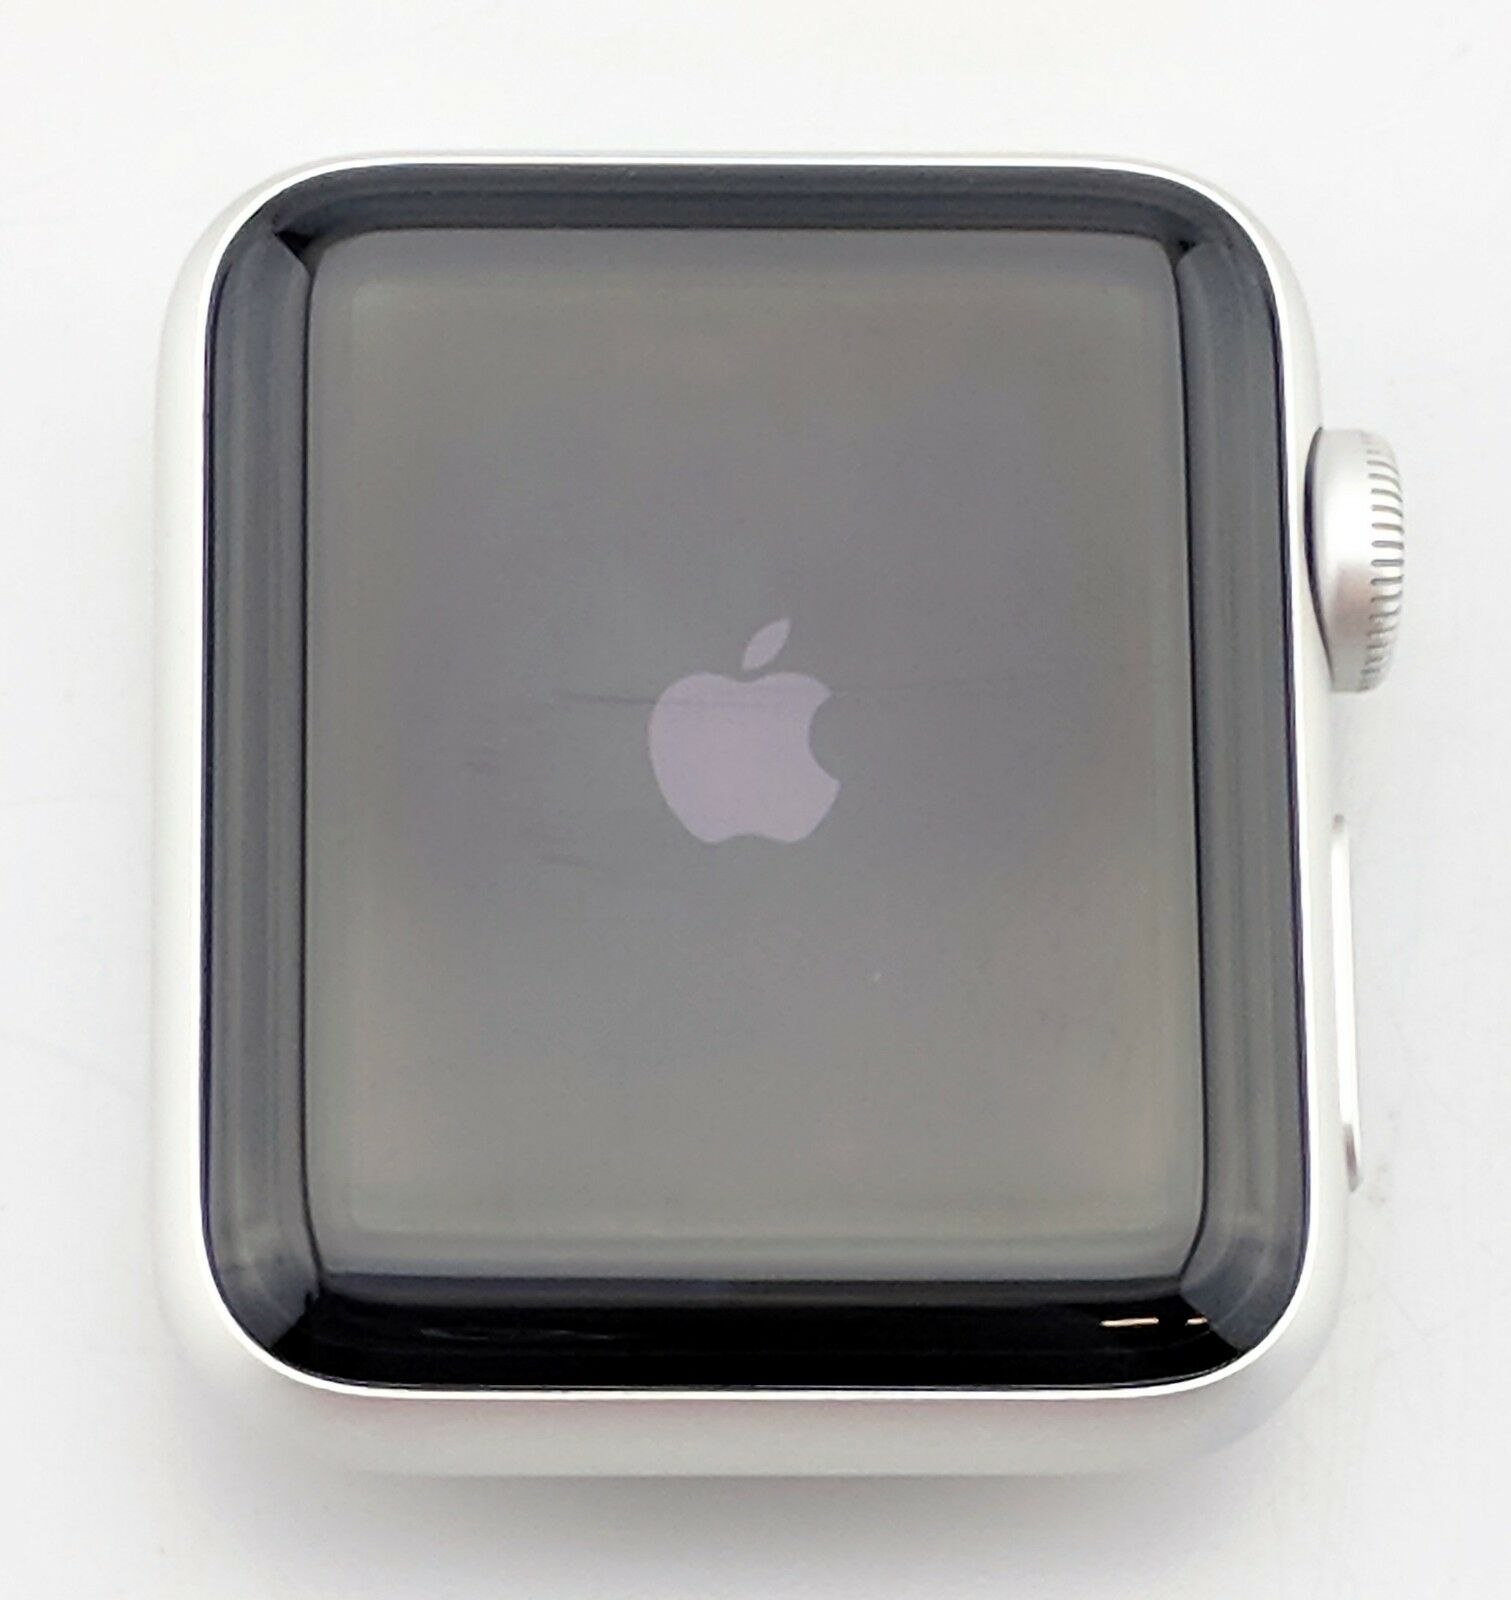 Apple Watch Series 2 Nike 38mm Silver Aluminum Case Gps Fair Black Shape 1 Of 3only Available